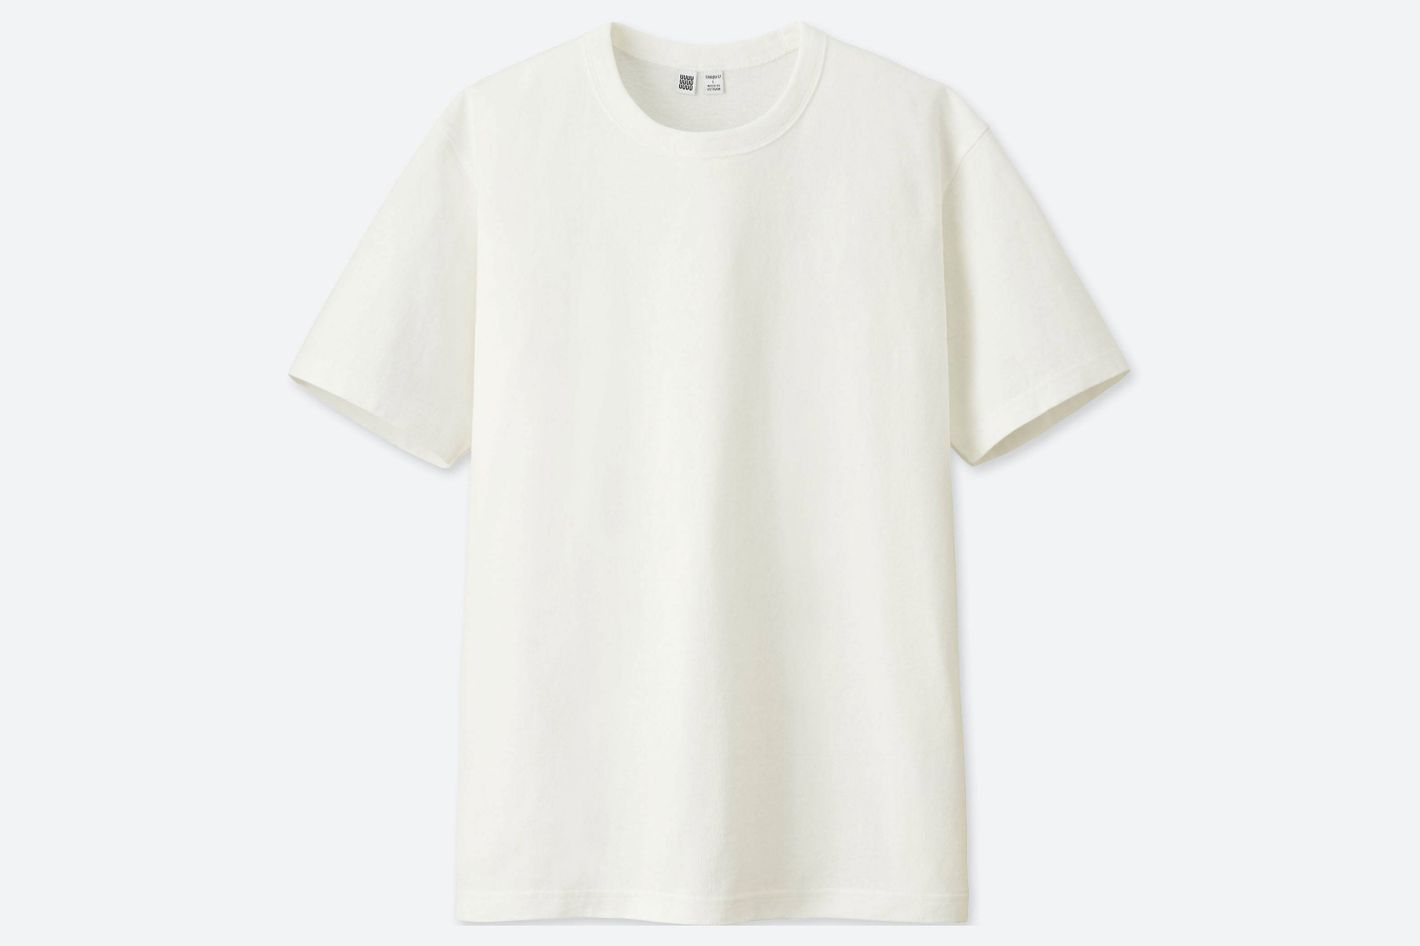 Uniqlo U Crewneck Short Sleeve T-shirt 5e4621bba8a